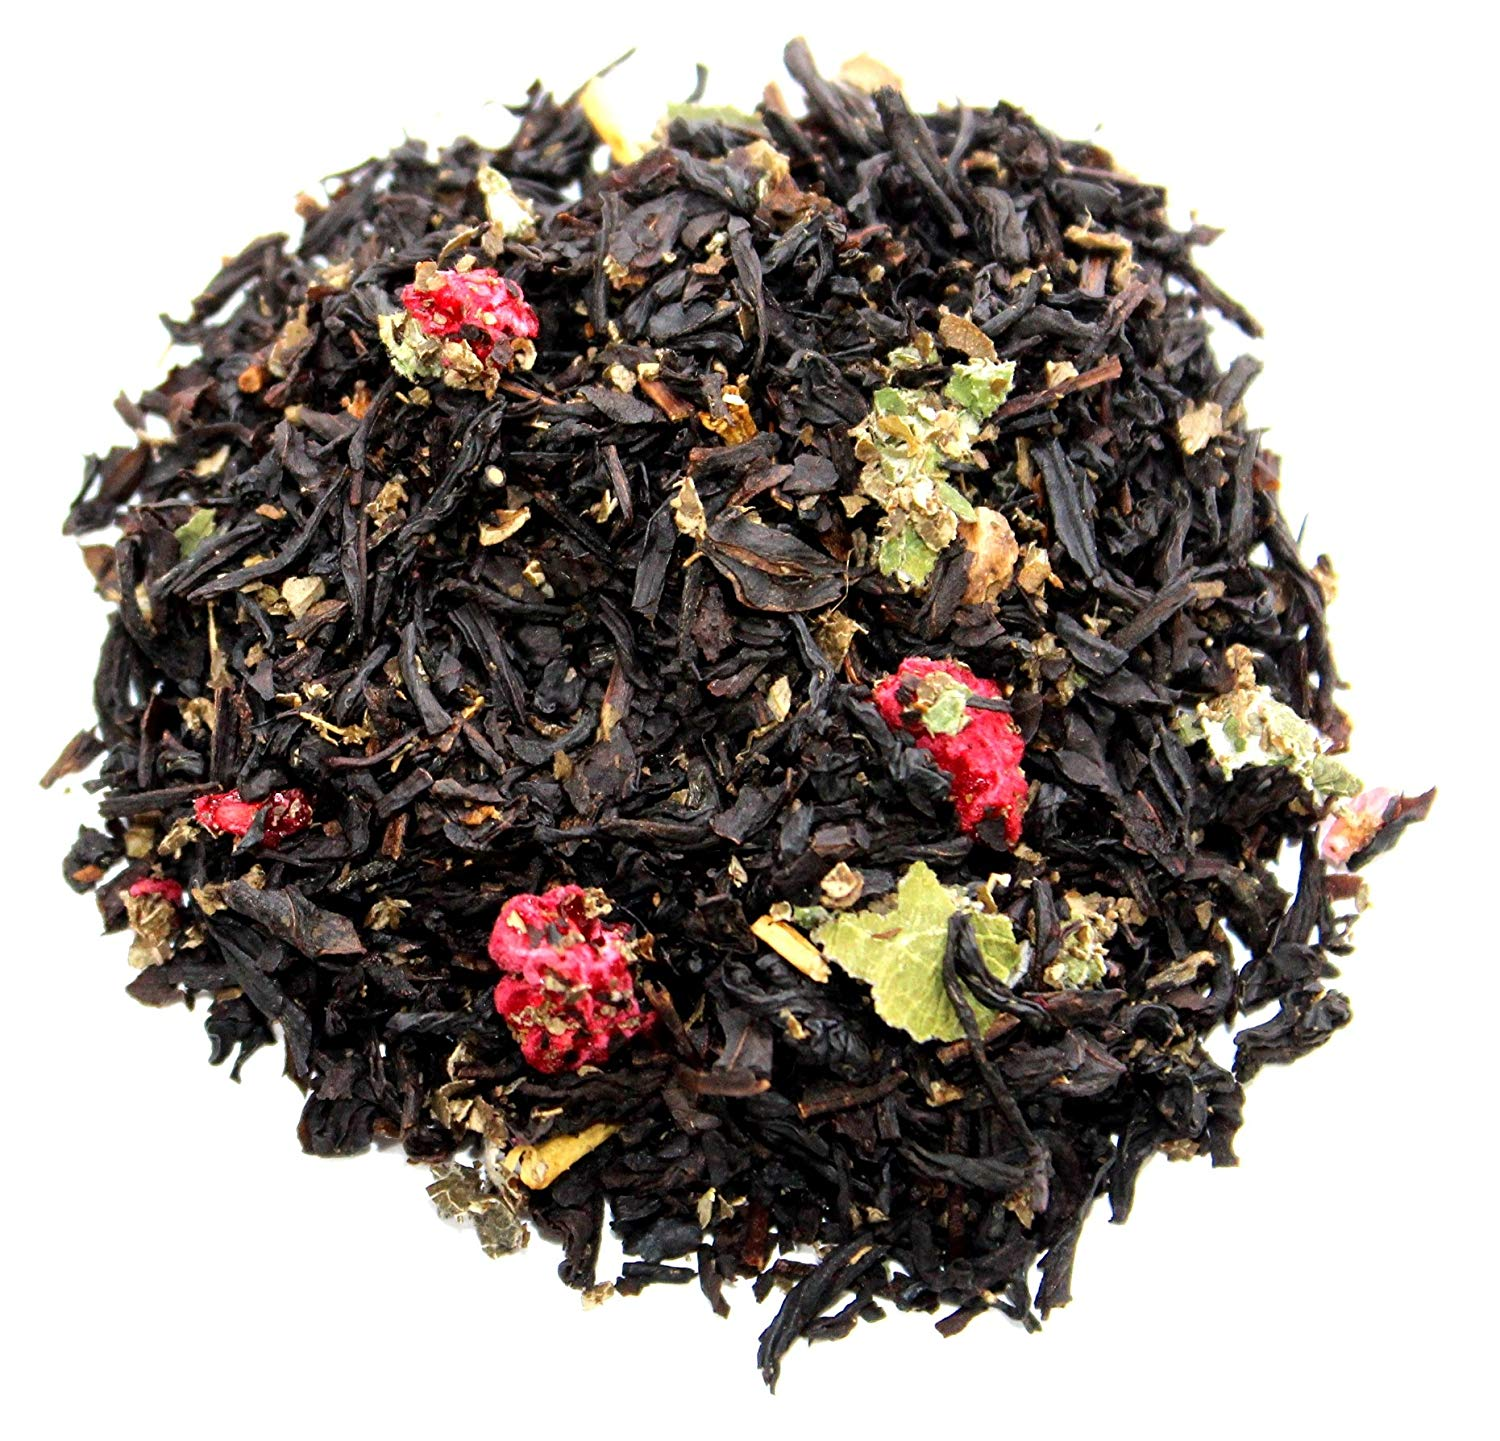 Nelson's Tea Red Raspberry Black Tea Loose Leaf (Looseleaf) (with Black tea, dried raspberries, raspberry leaf, fruit flavoring) (1 lb.) (16 oz.)